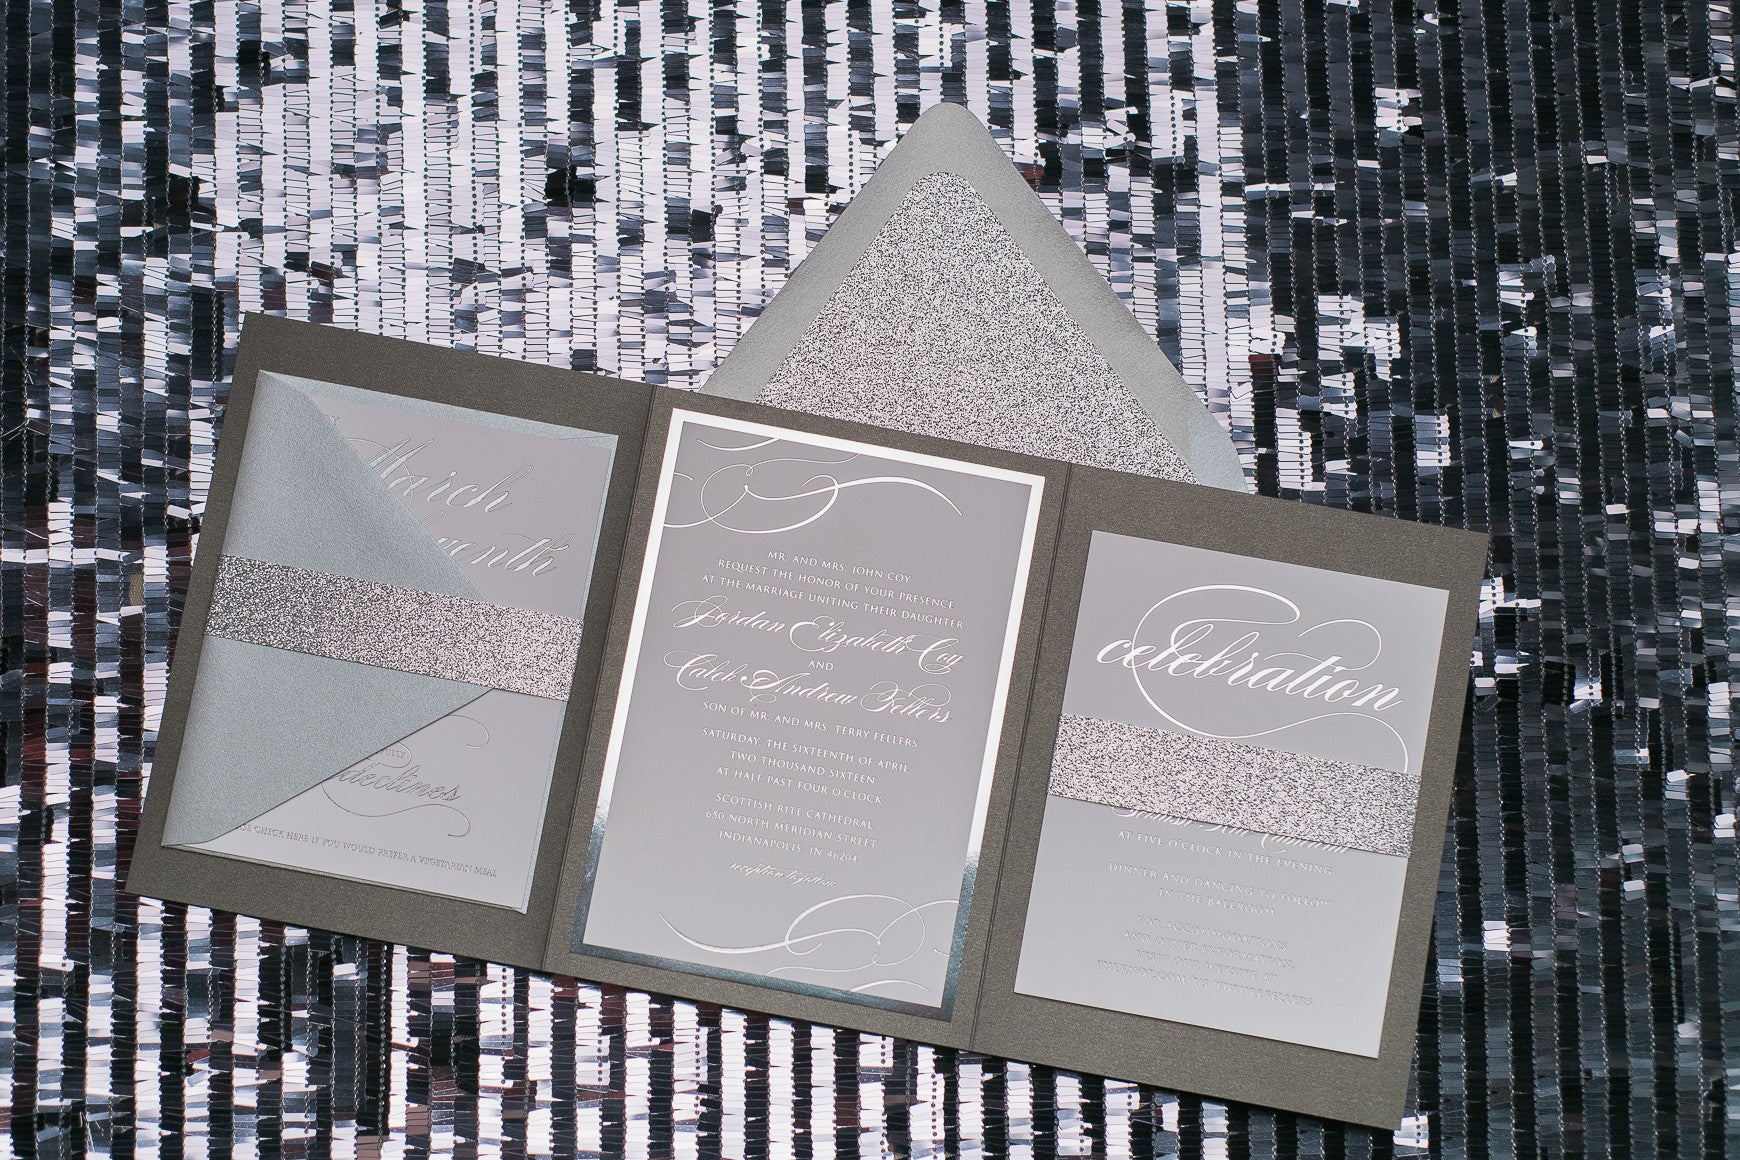 Real Wedding: Jordan and Caleb | Silver Foil and Grey Gate Folder Wedding Invitations with Sparkly Glitter!